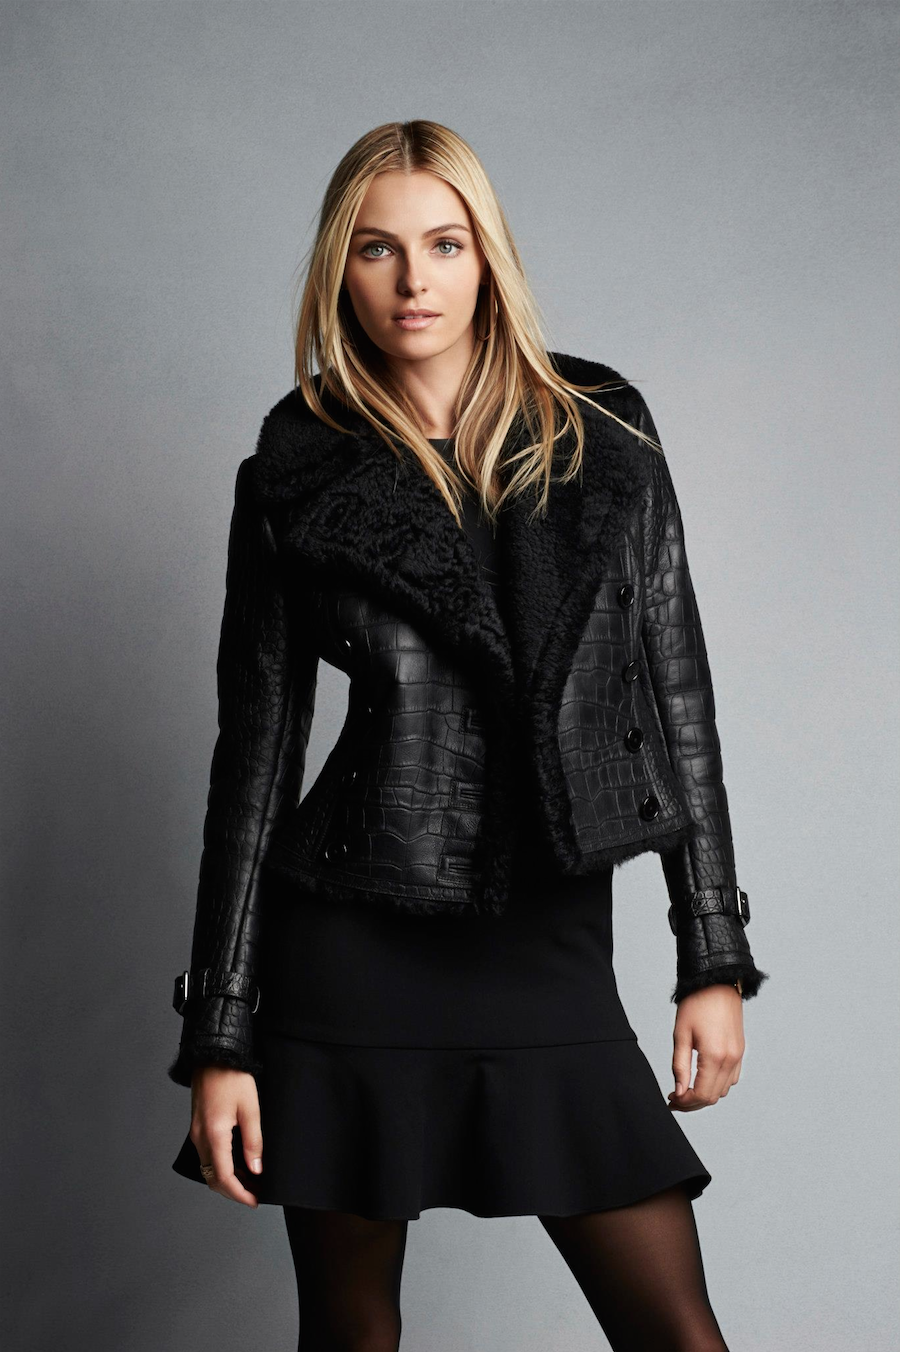 Ralph Lauren Black Label Jackets and Outerwear